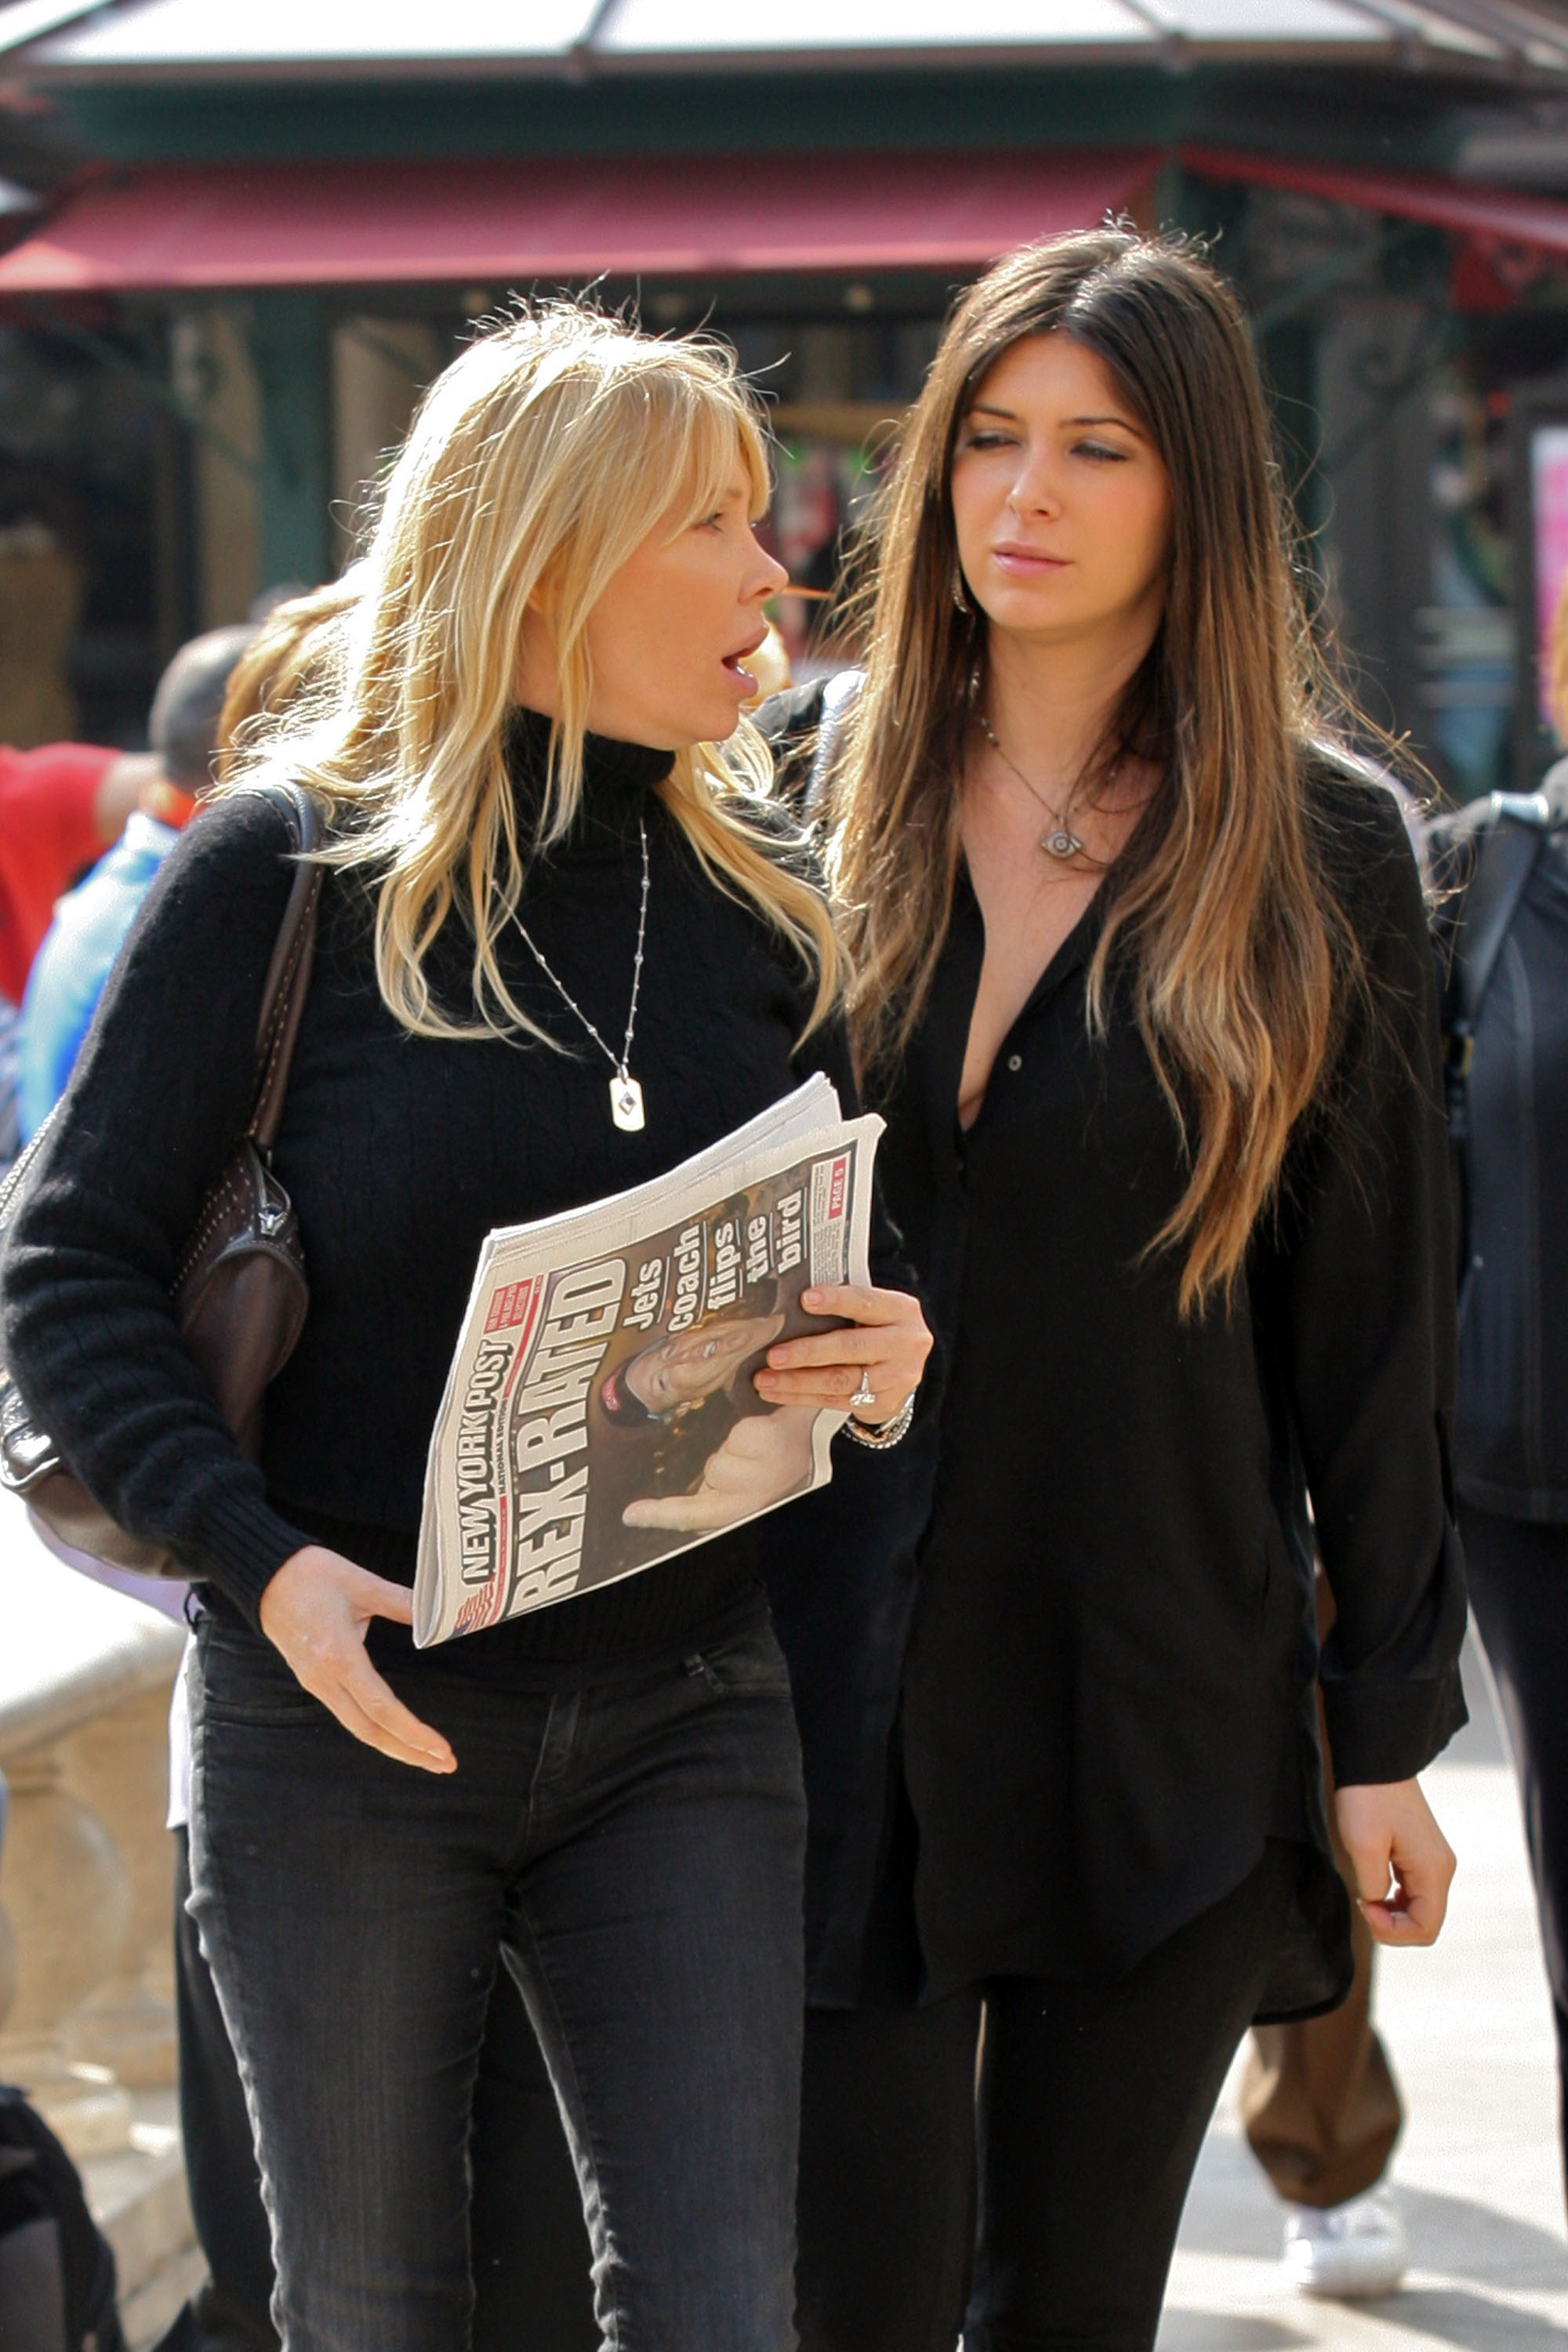 24831_celebrity-paradise.com-The_Elder-Brittny_Gastineau_2010-02-01_-_out_shopping_in_Hollywood_844_122_357lo.jpg